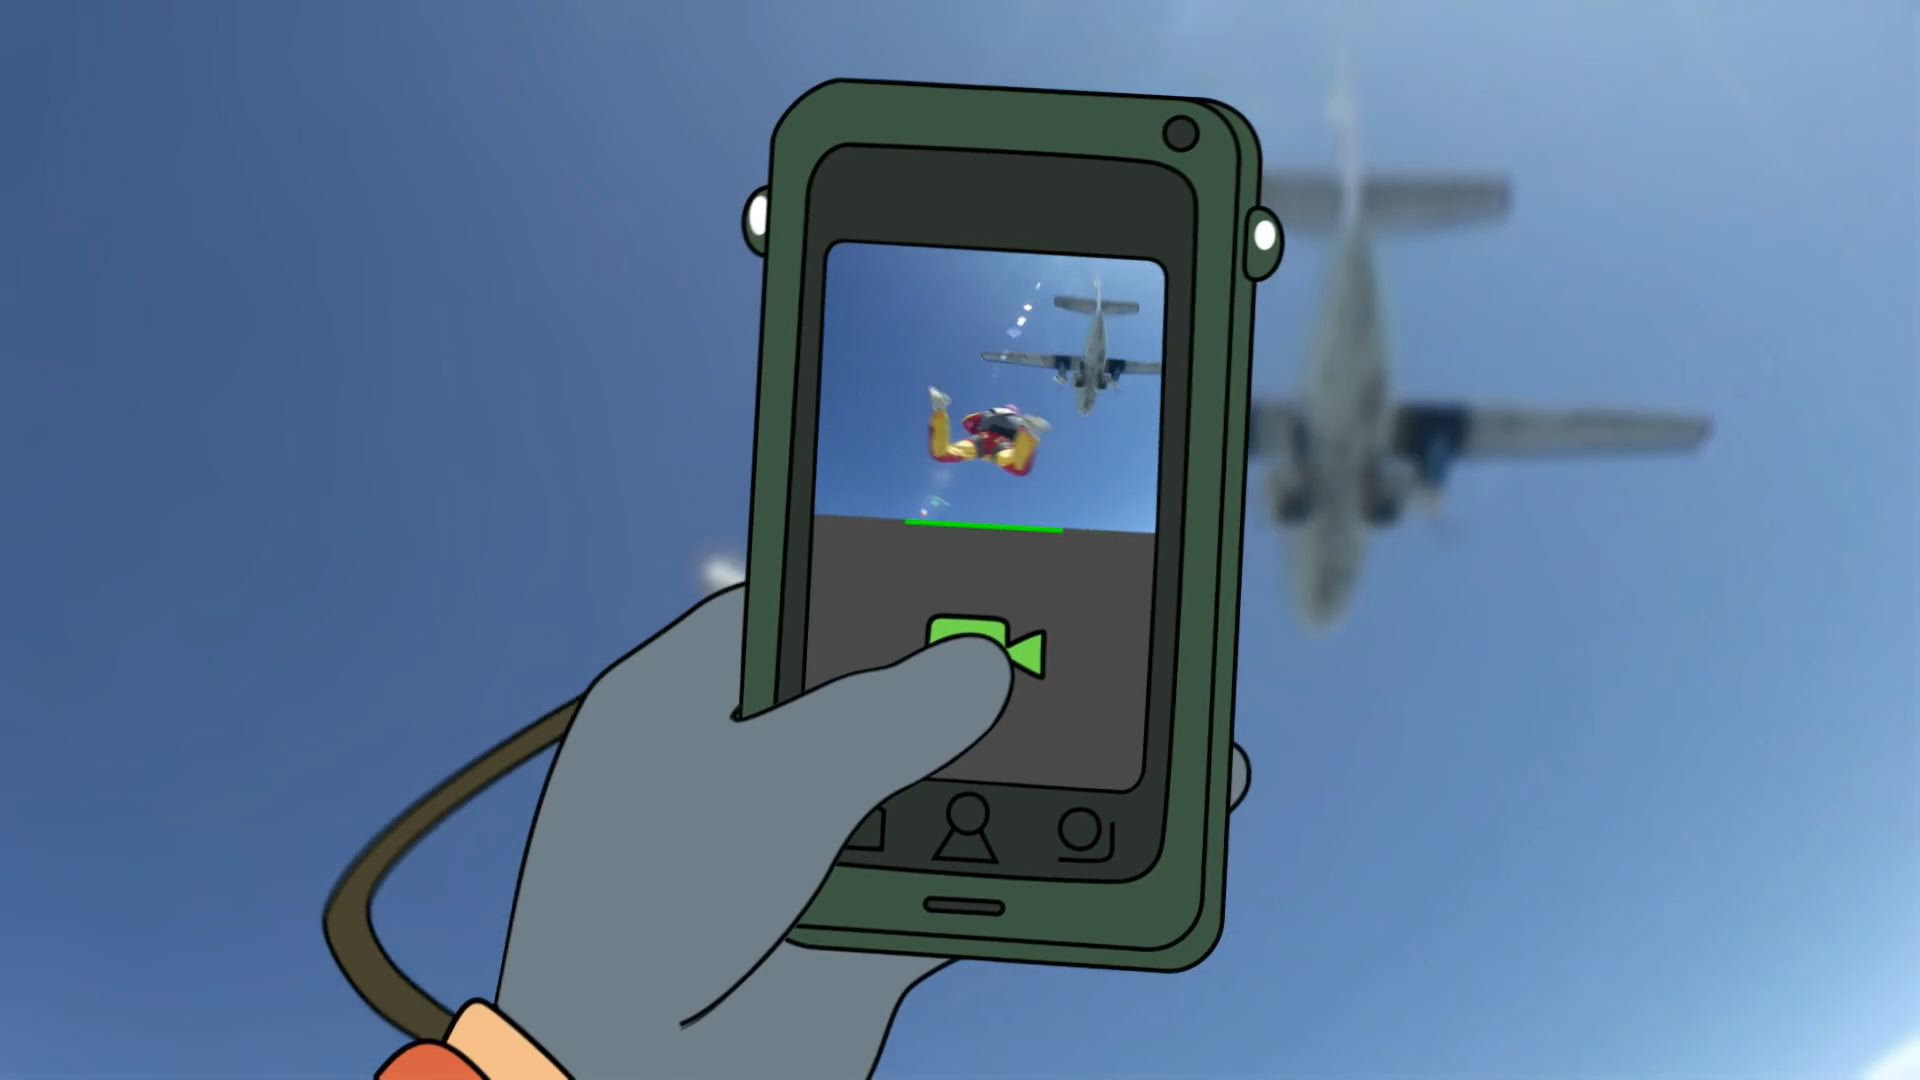 A 2D animated phone capturing a live-action video of skydiving